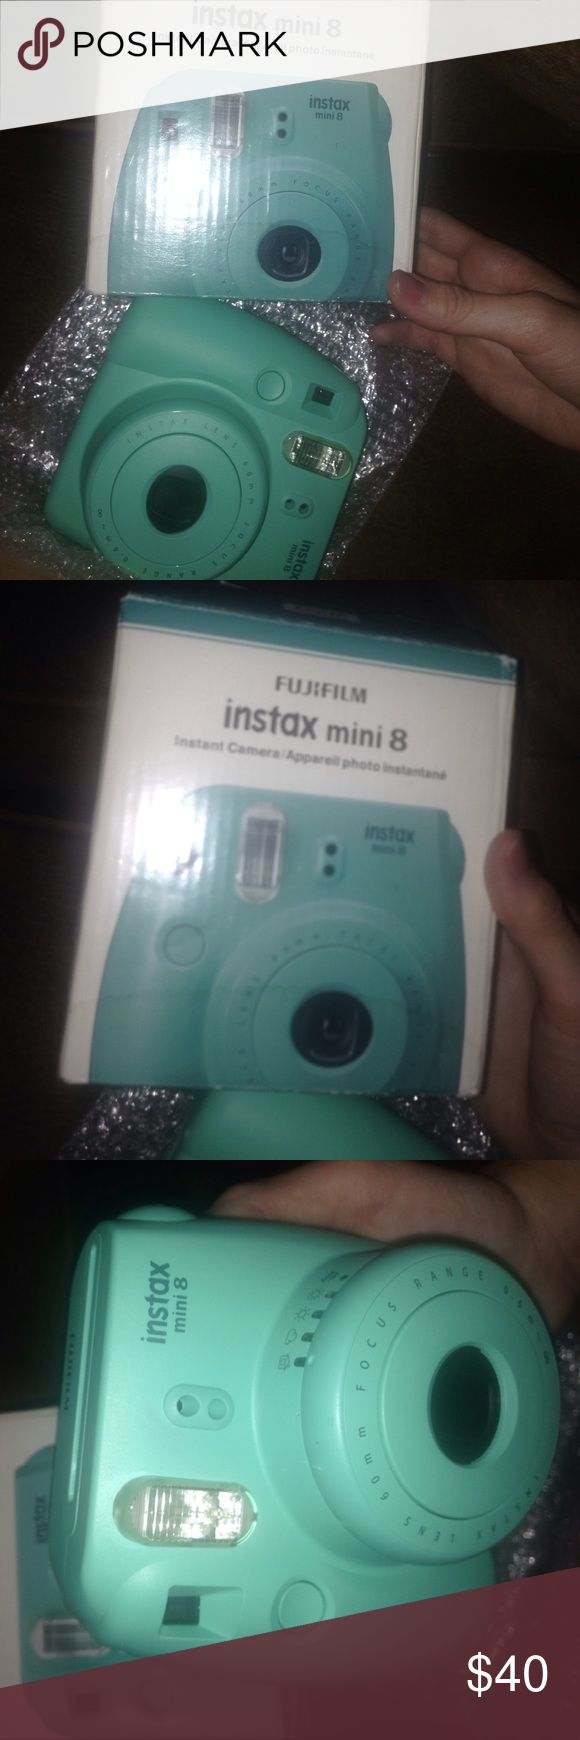 Instax mini 8 Polaroid camera Great condition barley used. Price negotiable Other